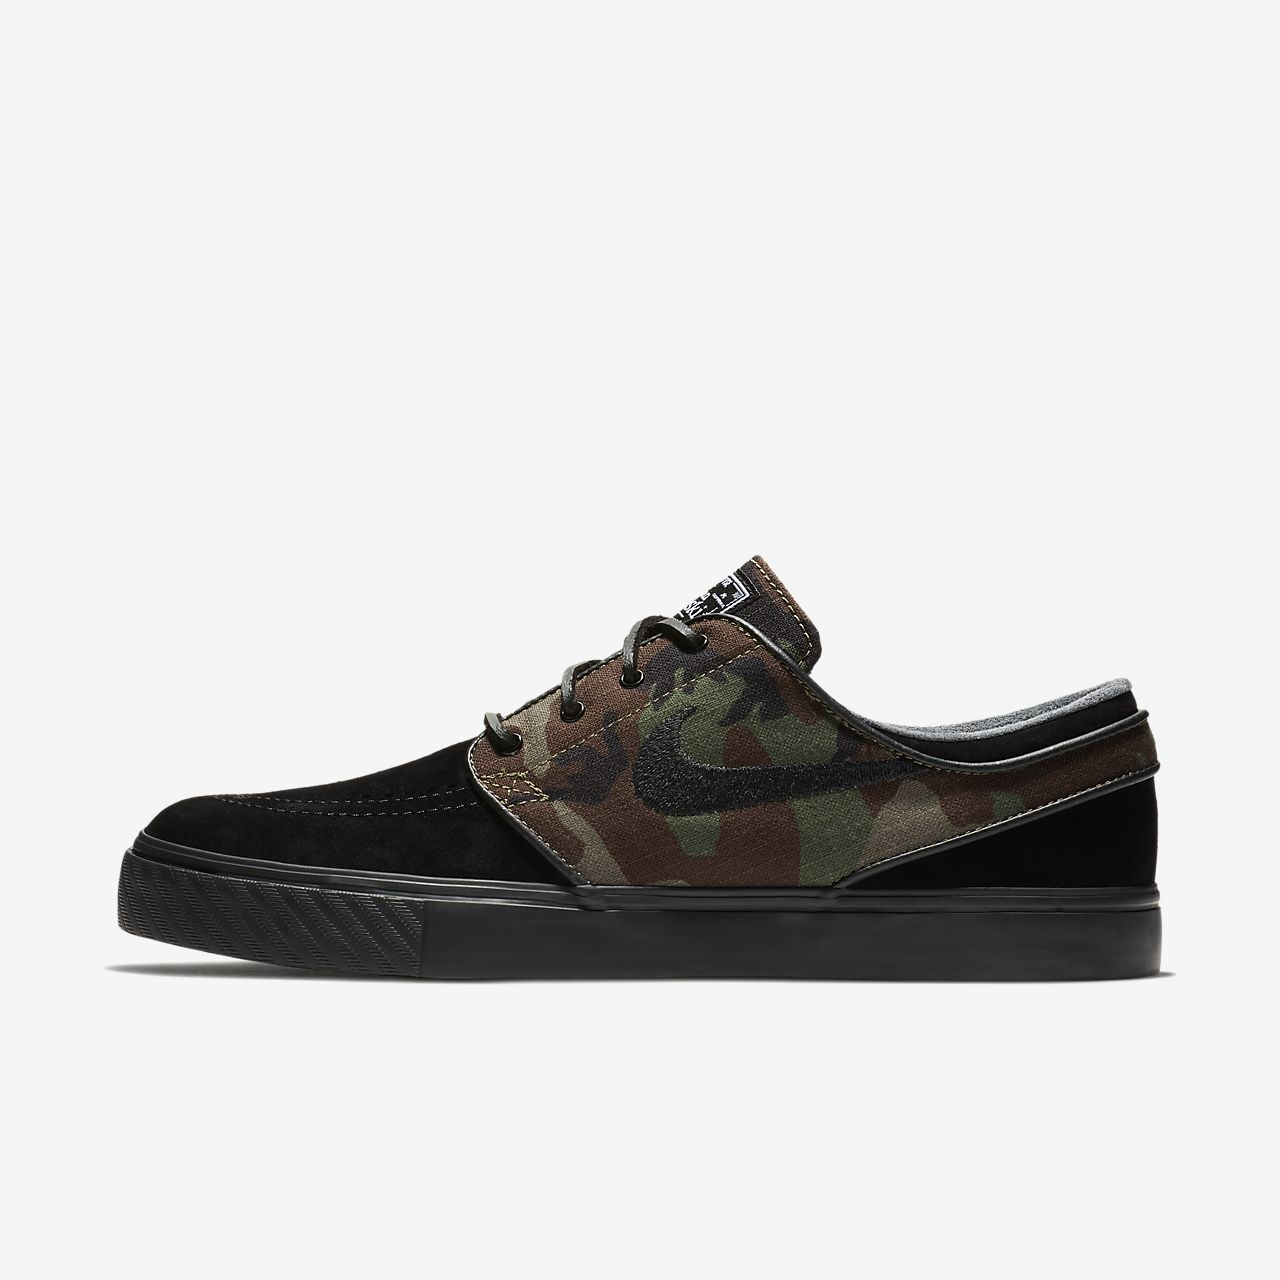 Nike SB Zoom Stefan Janoski Men's Skateboarding Shoes Blue/Brown qF6293V